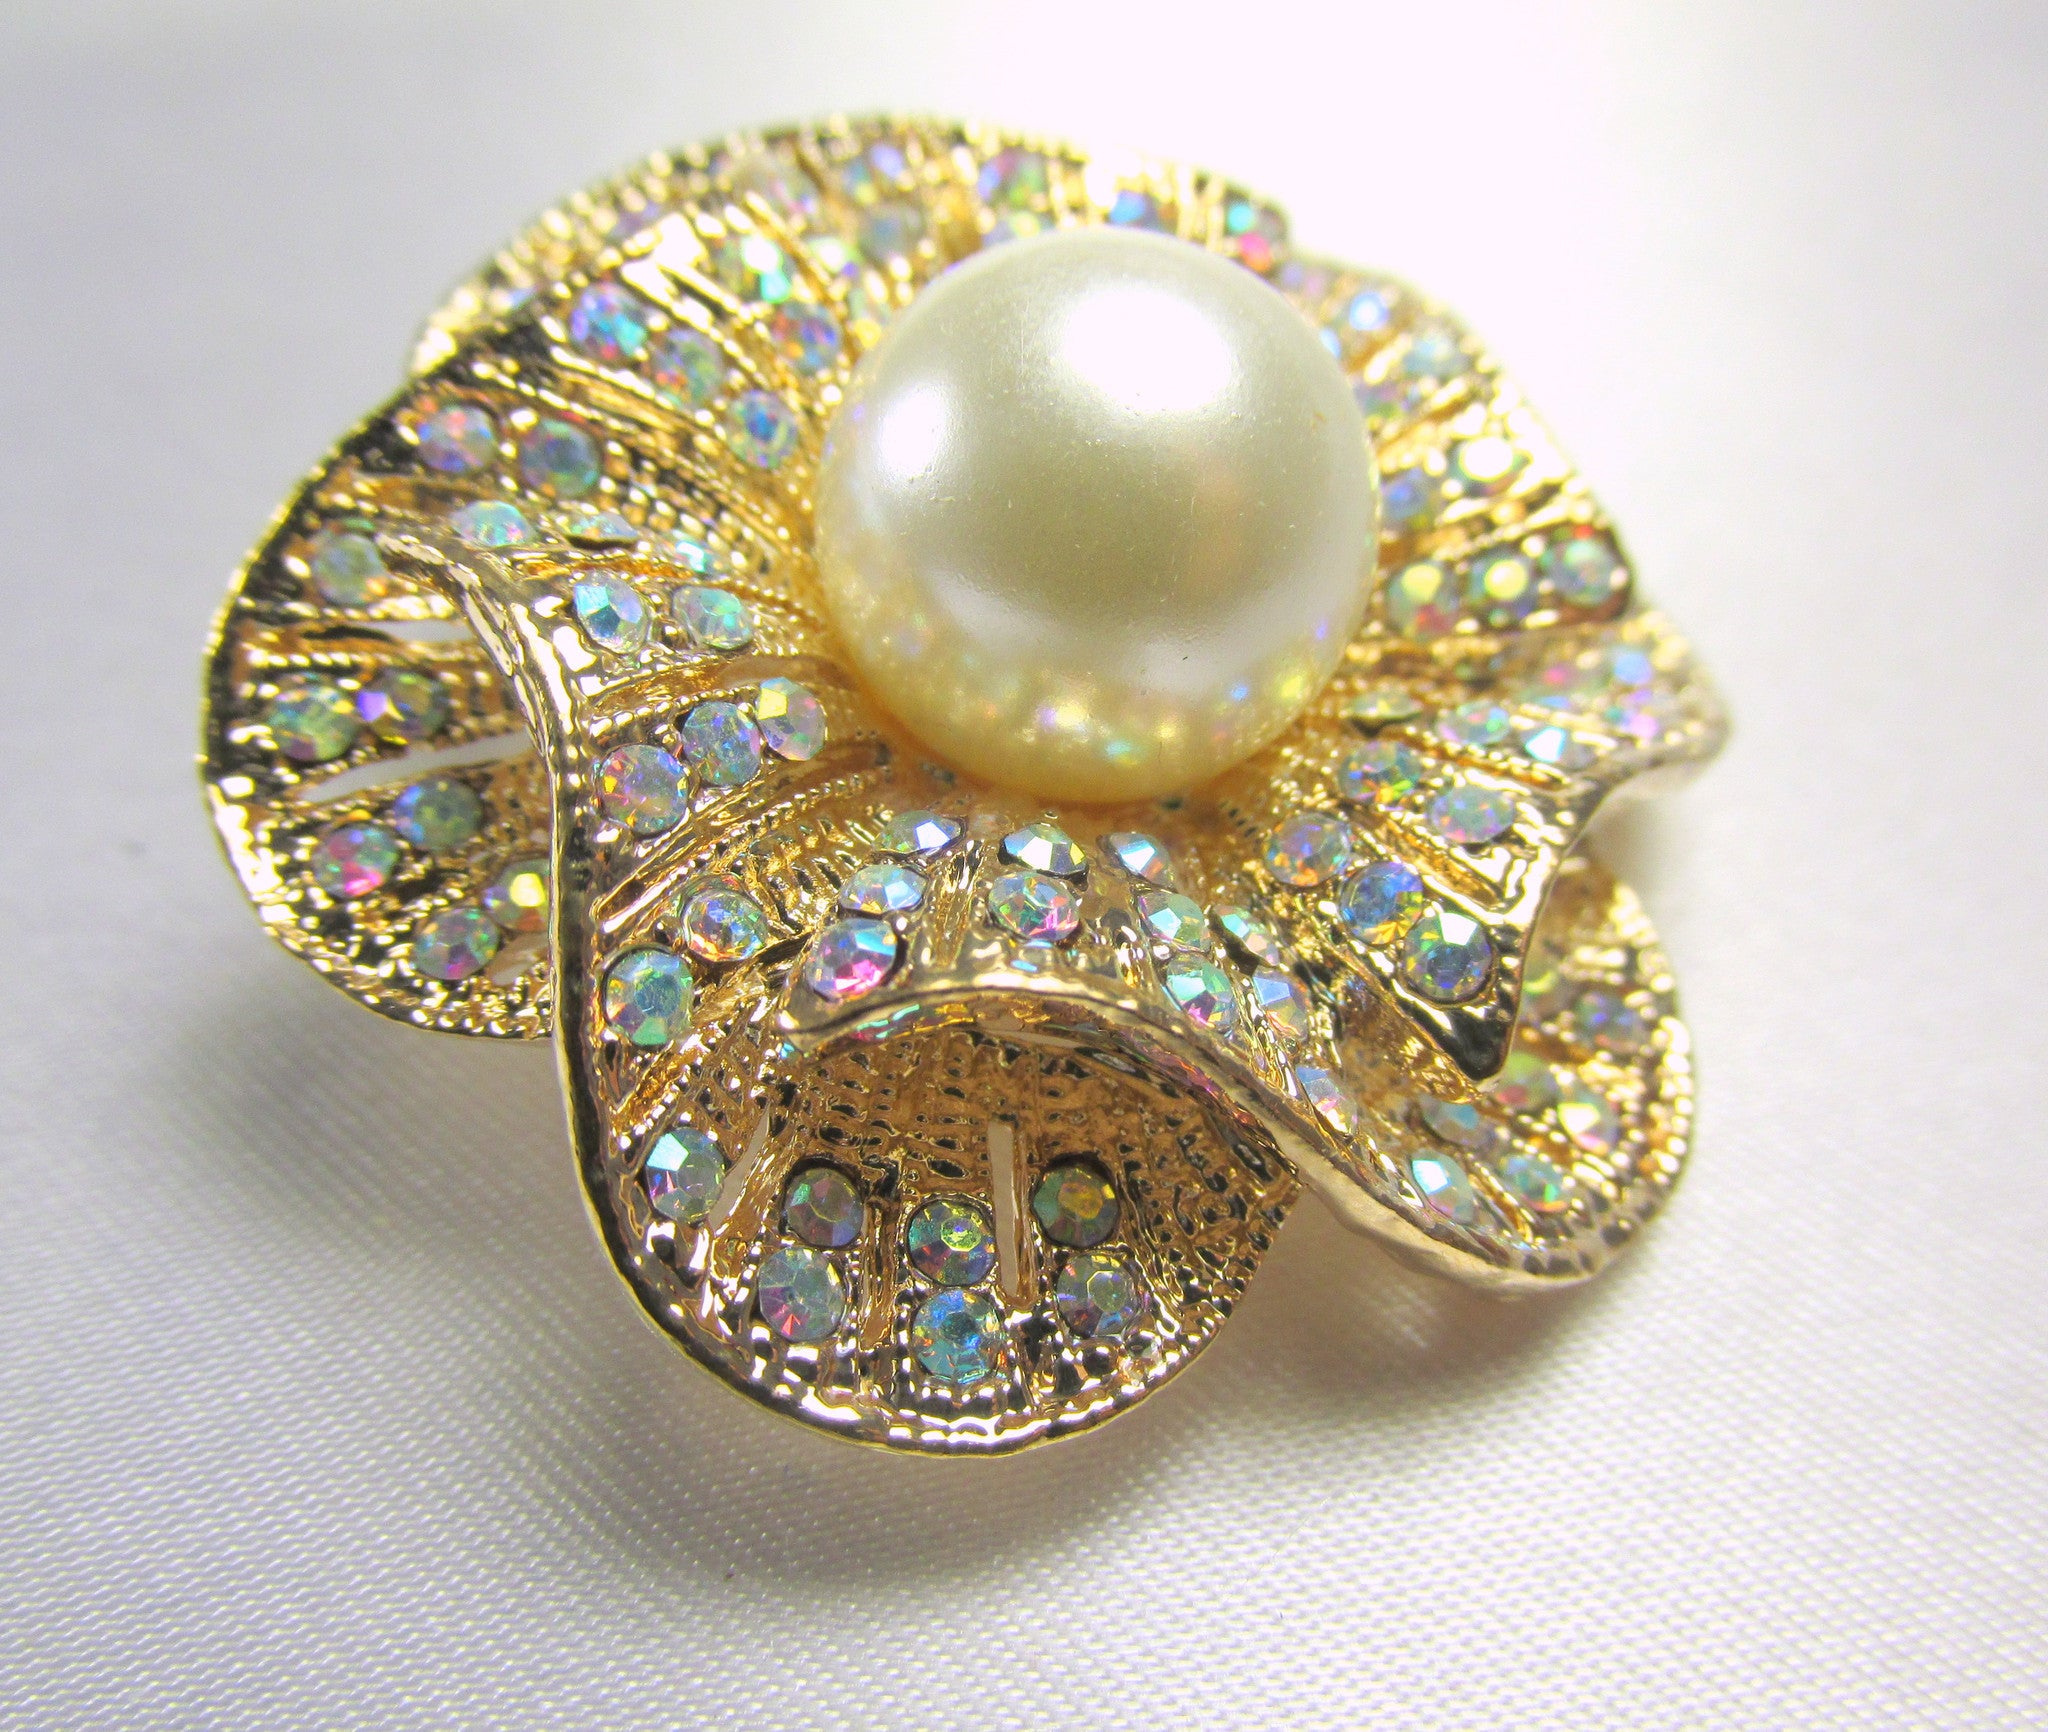 Crystal AB and Pearl Rose 1.75 inch Brooch on Gold - Odyssey Cache - 2